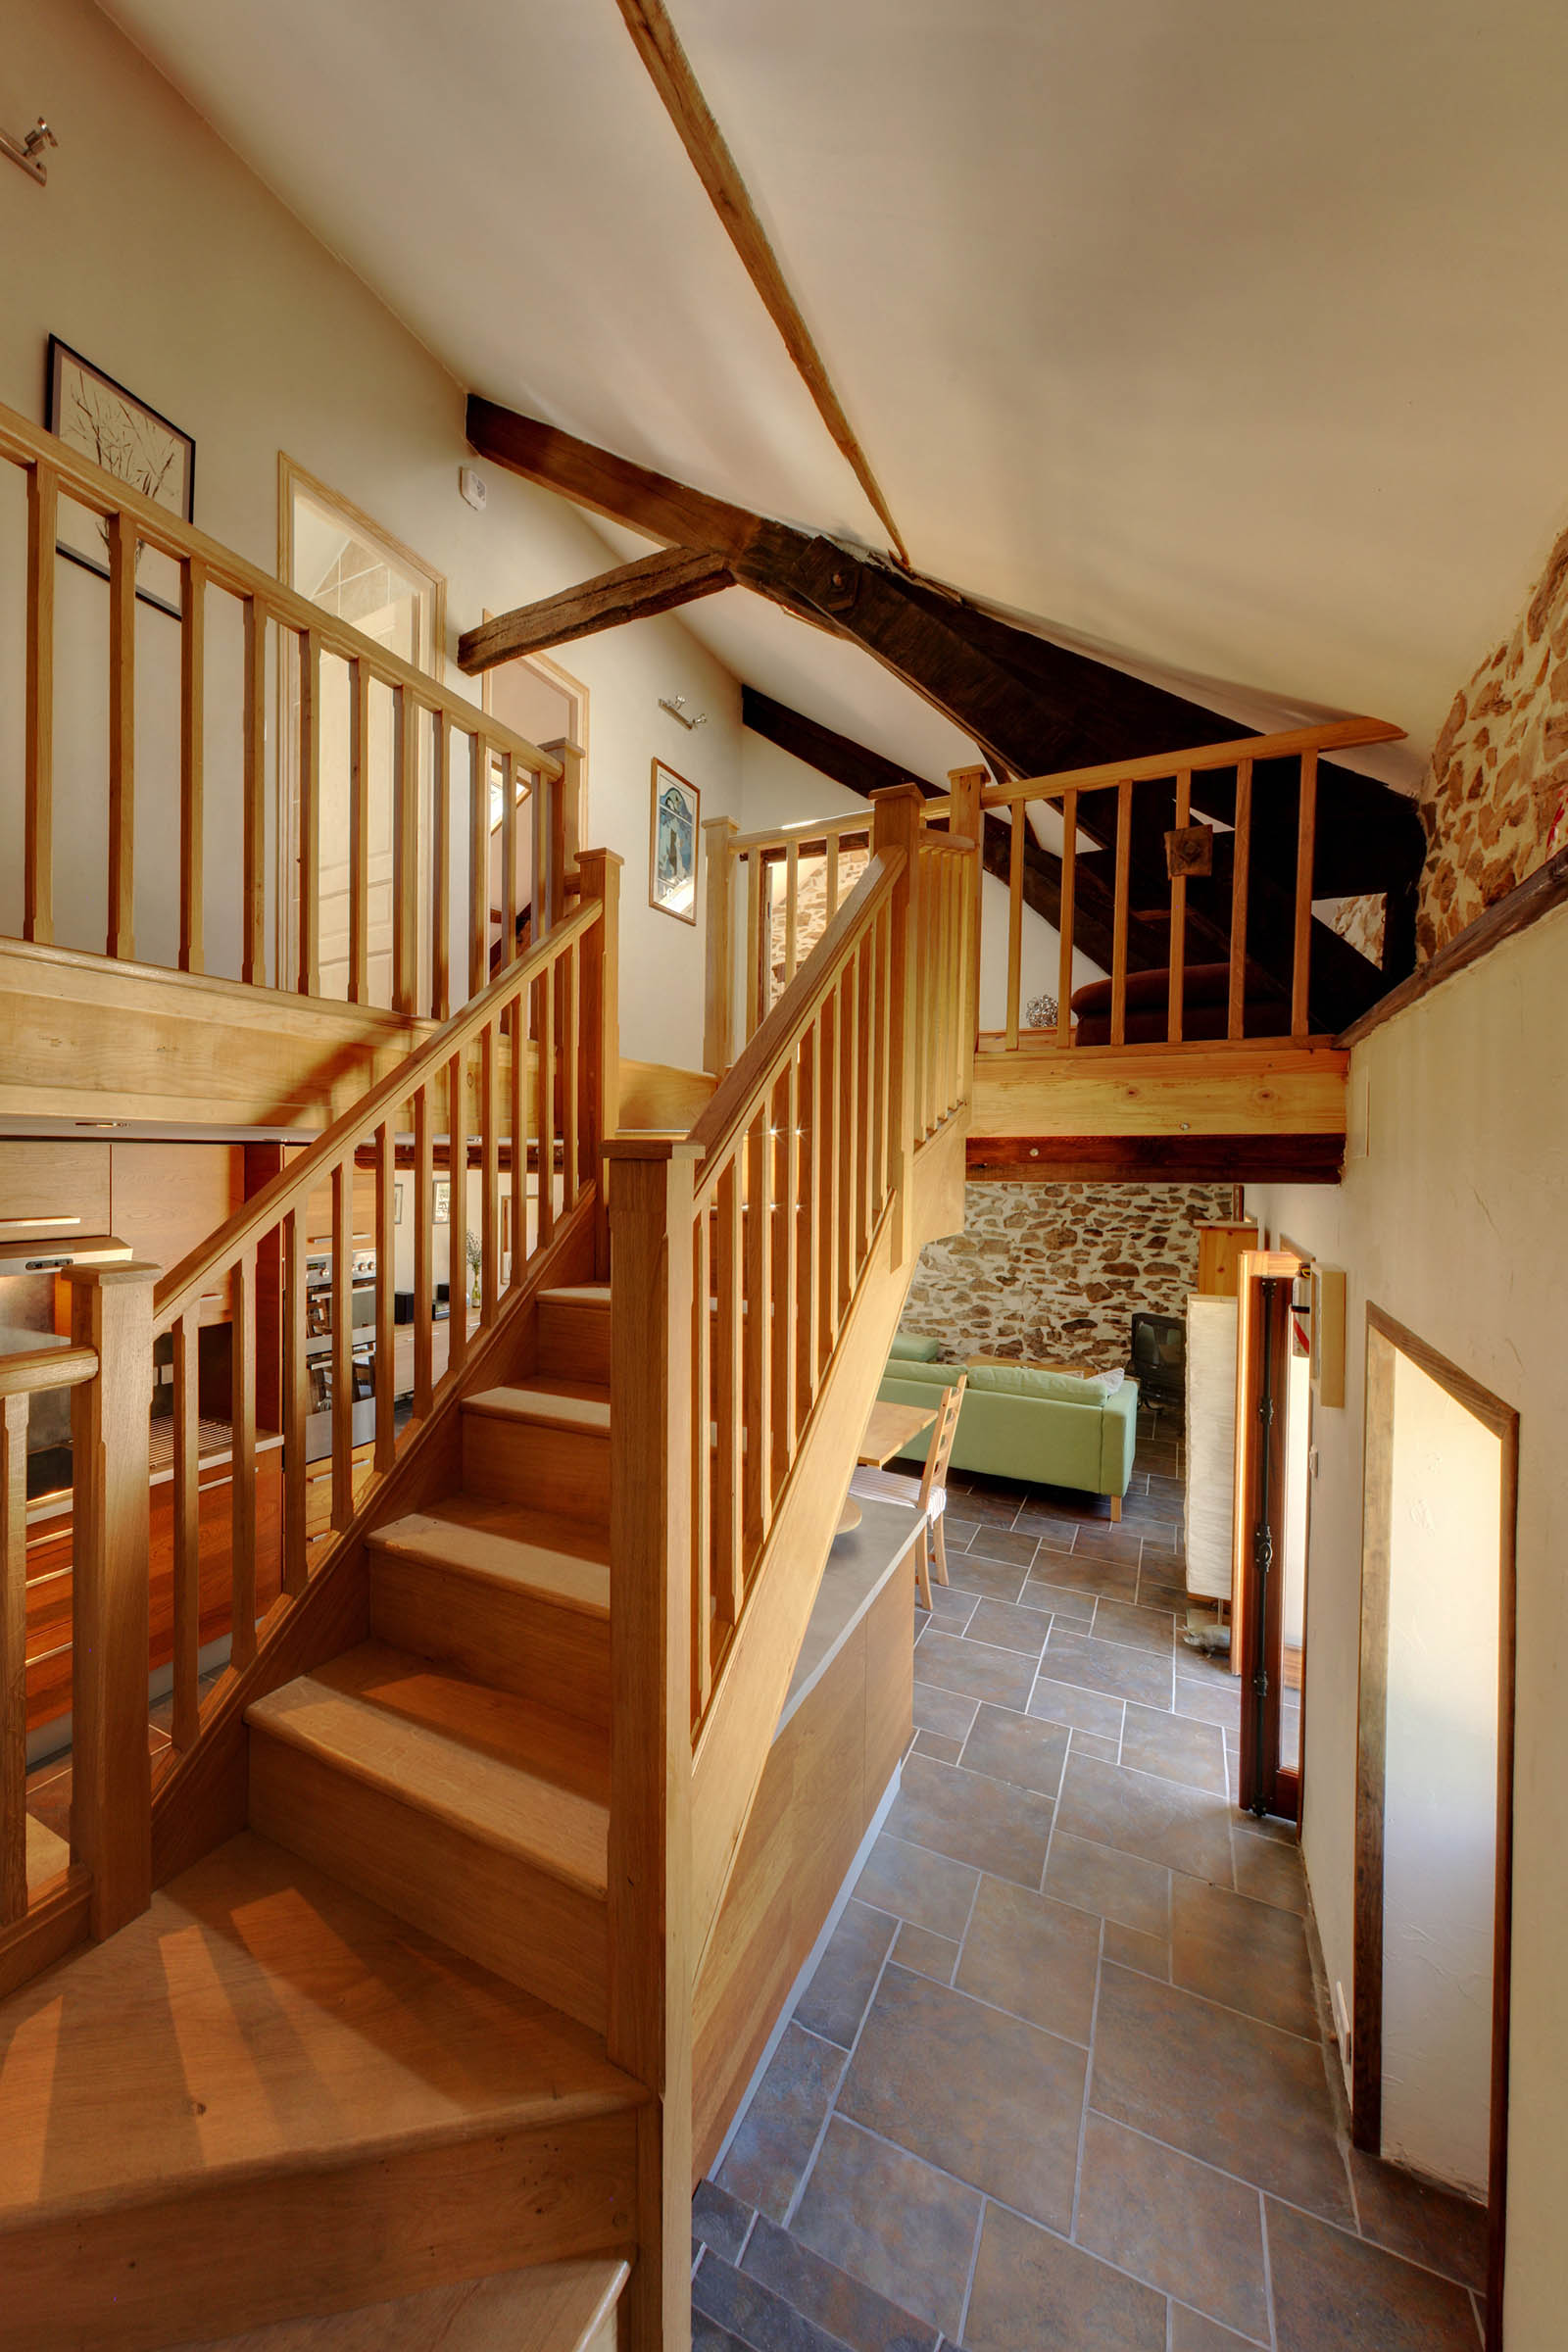 The bespoke oak staircase at the heart of this property